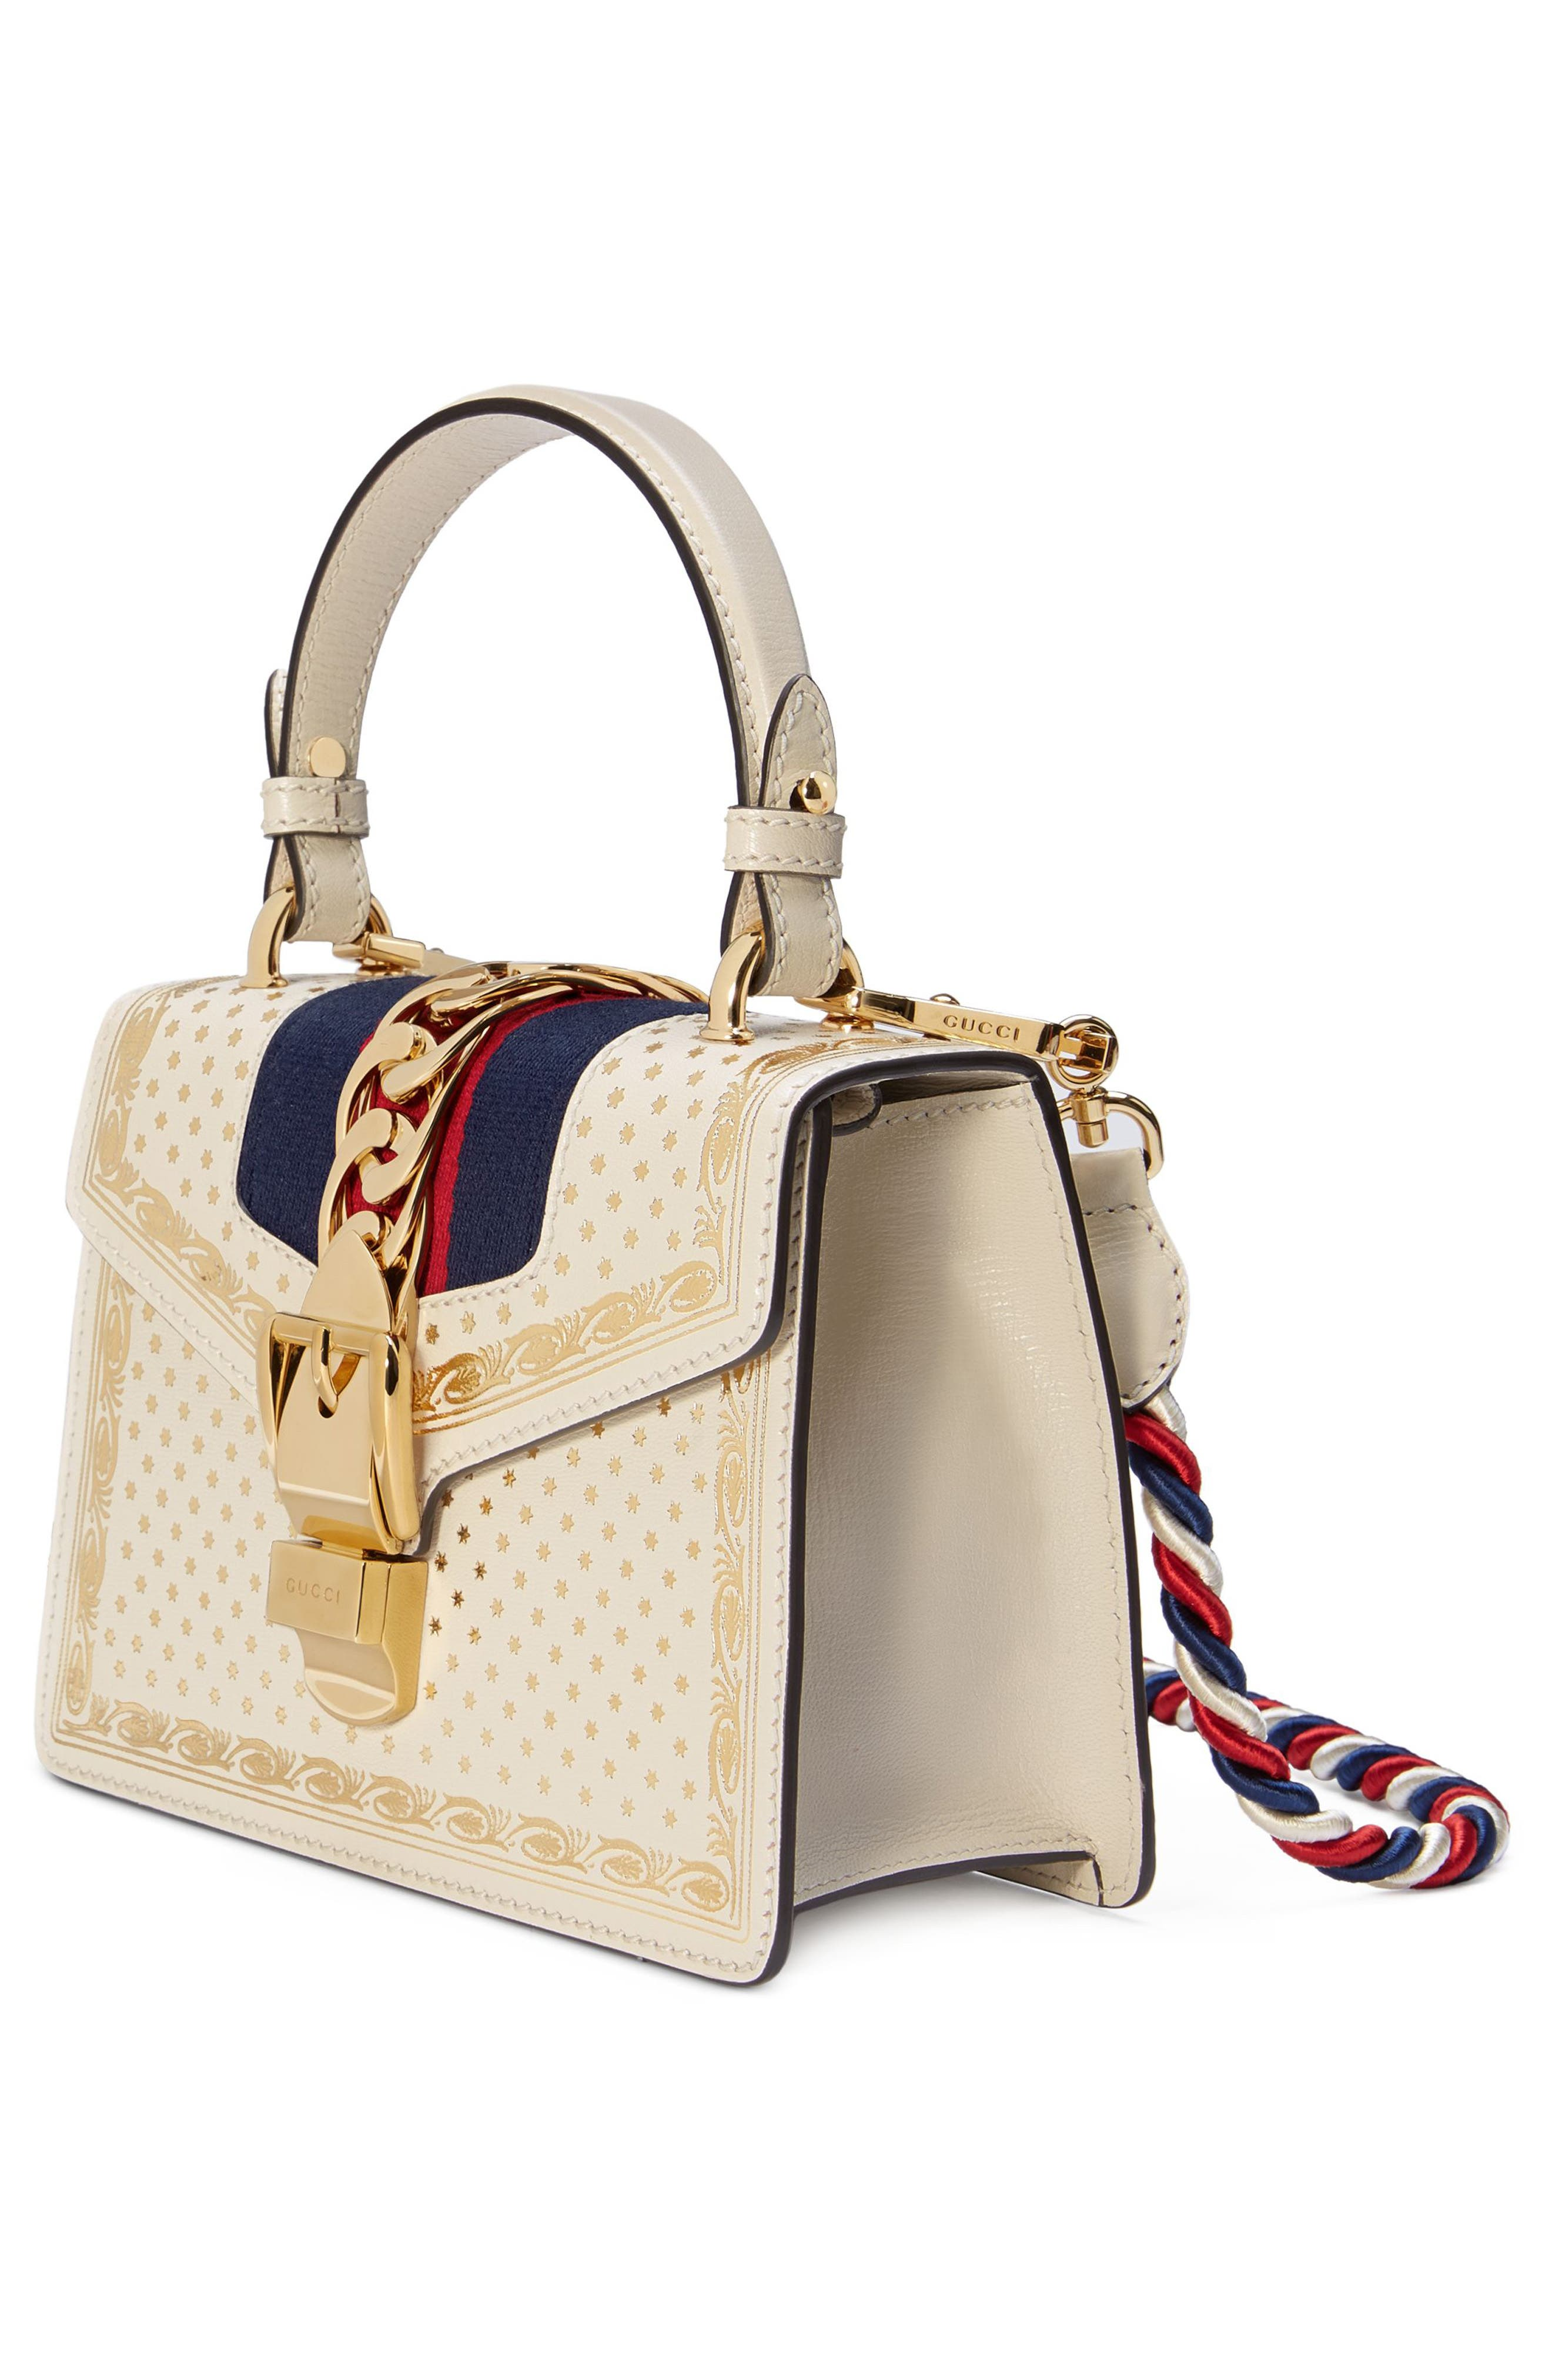 Mini Sylvie Moon & Stars Leather Shoulder Bag,                             Alternate thumbnail 4, color,                             Mystic White/ Oro/ Blue Red